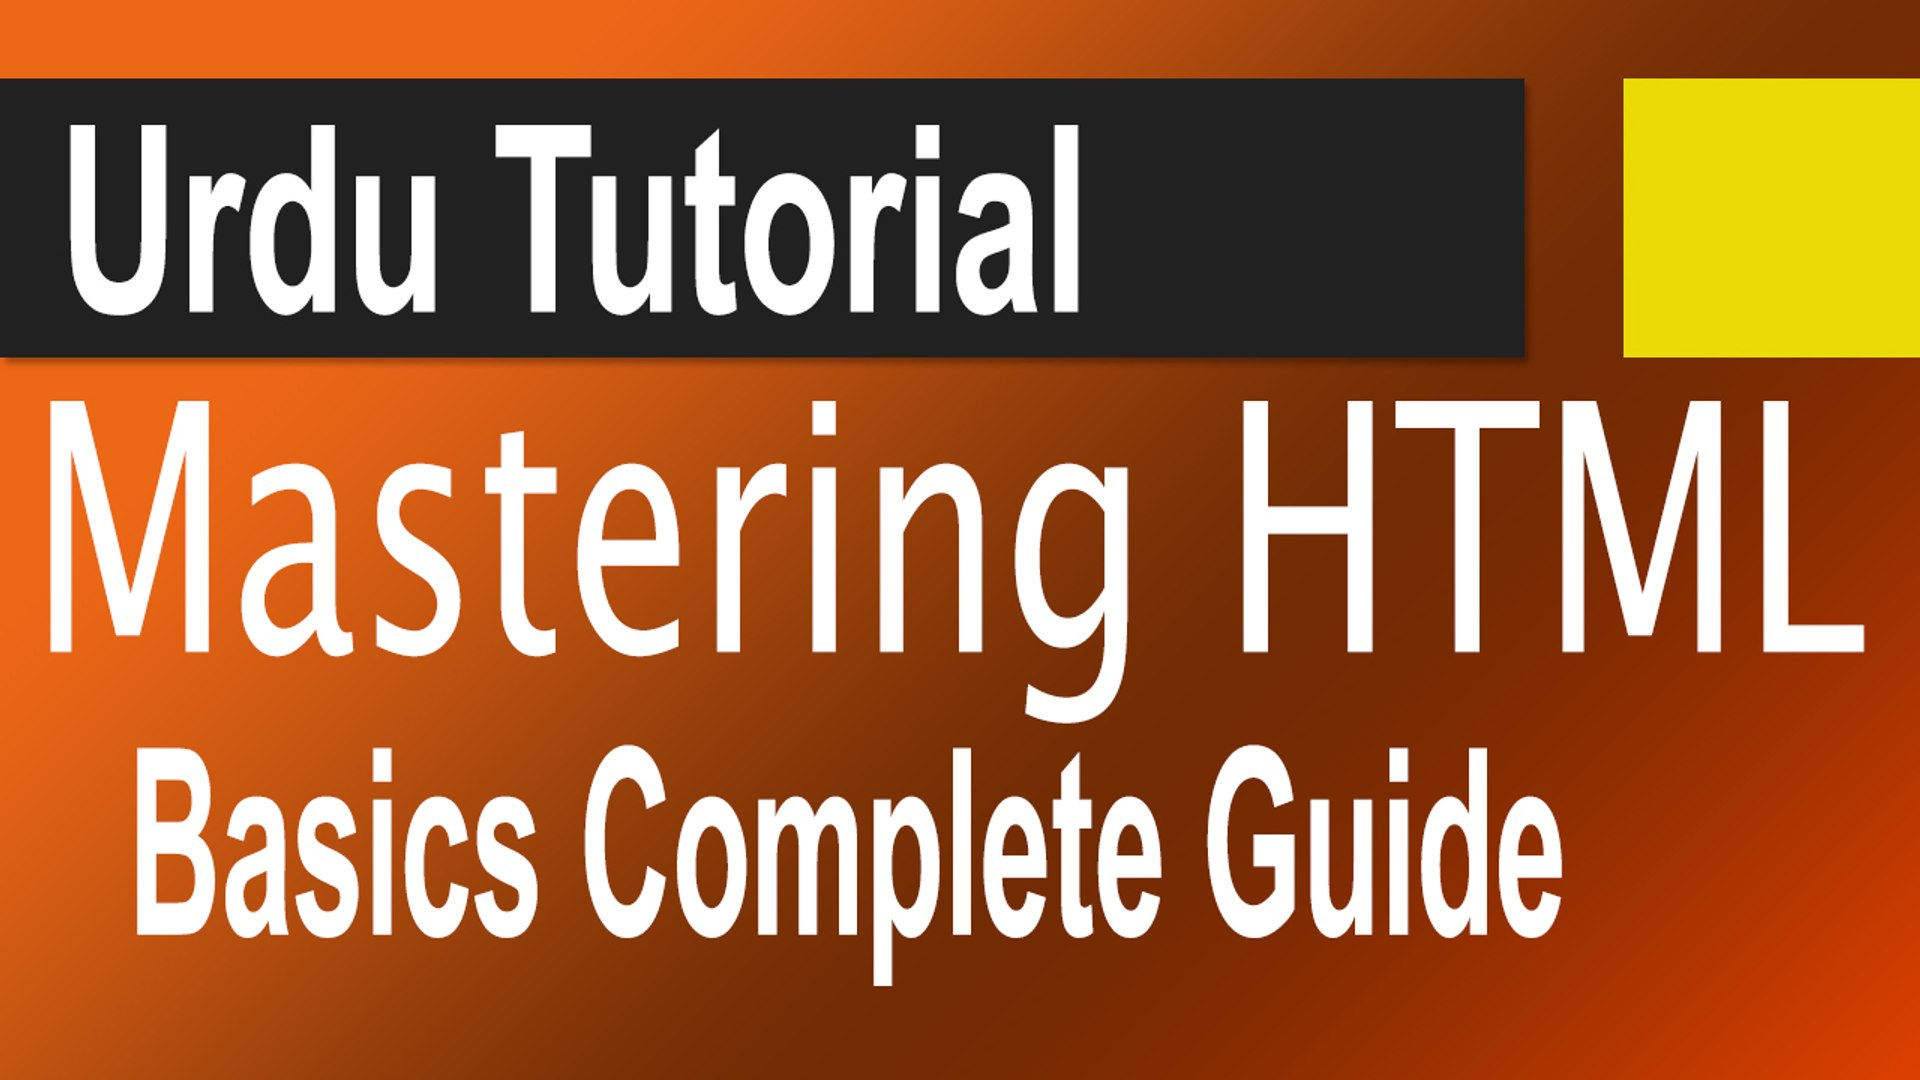 Mastering HTML Basics in Urdu Complete Guide for Beginners - video  dailymotion